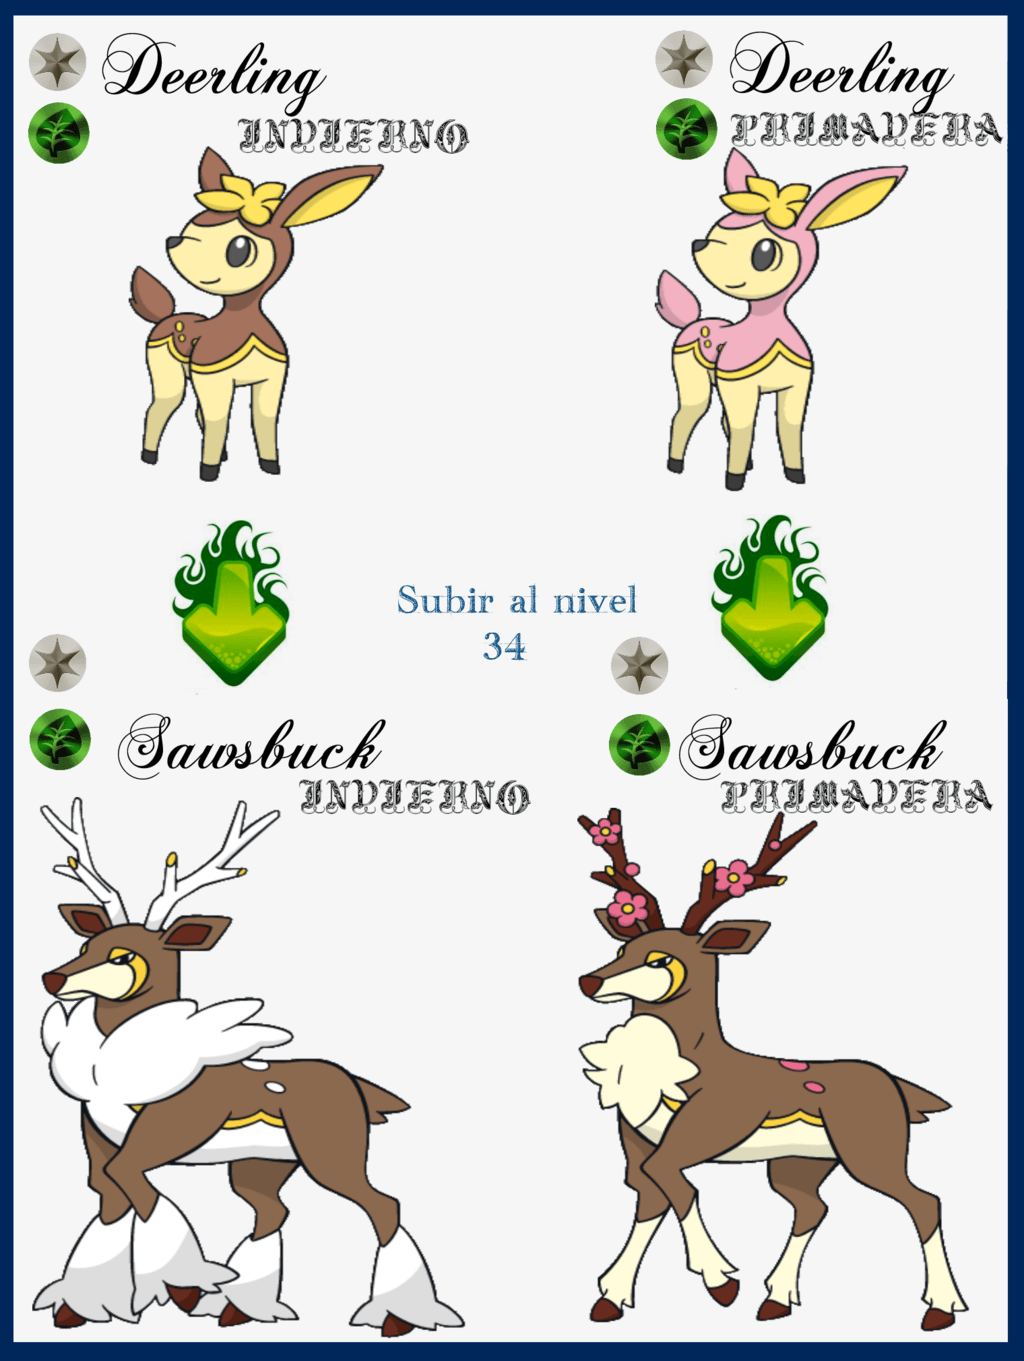 254 Deerling Evoluciones by Maxconnery on DeviantArt